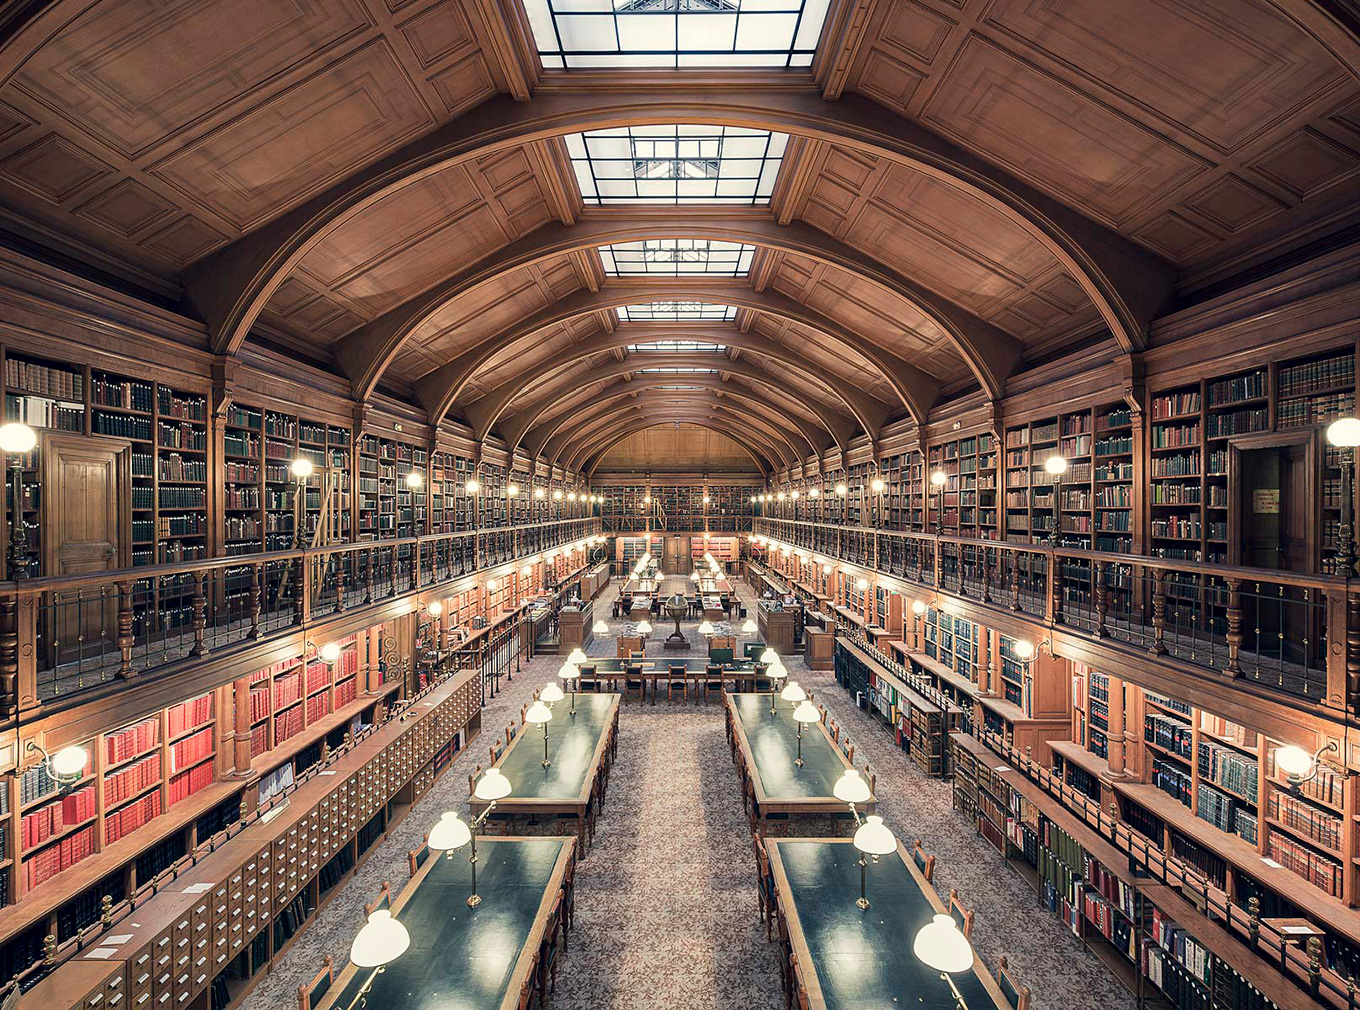 The world's most beautiful libraries: Bibliothèque de l'Hôtel de Ville